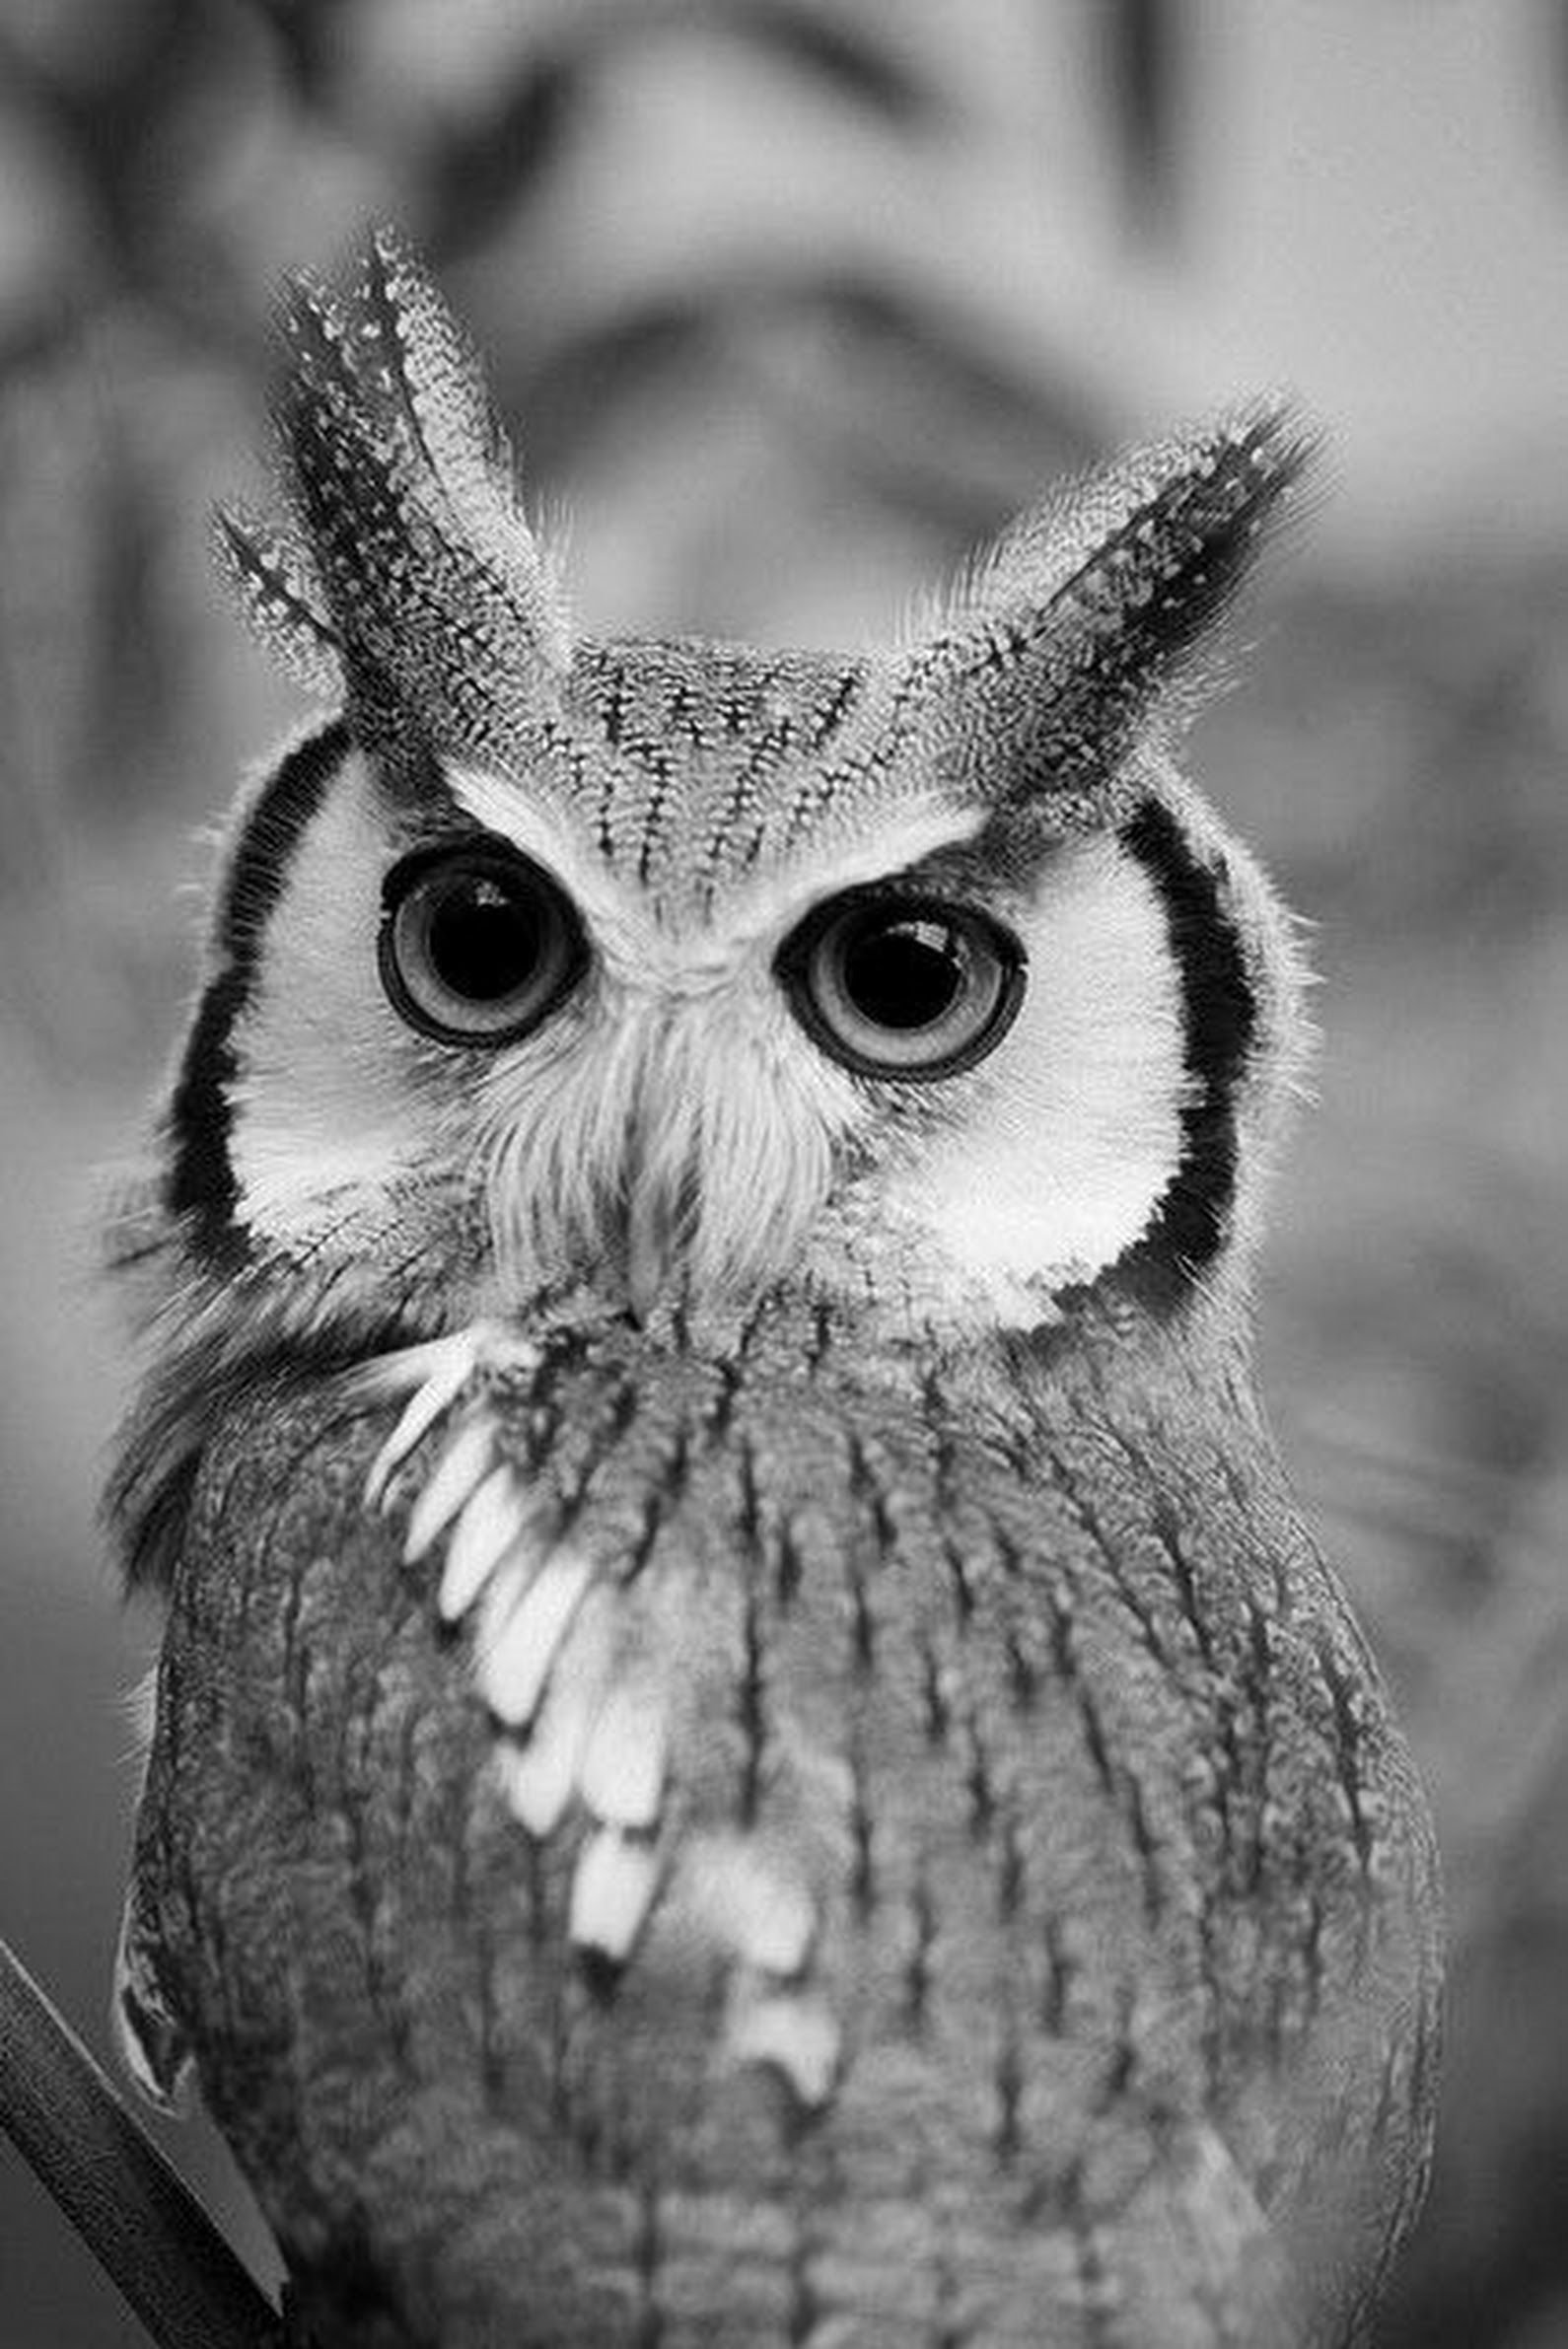 Pin by Debra Stone on OWLS Owl, Owl pictures, Birds